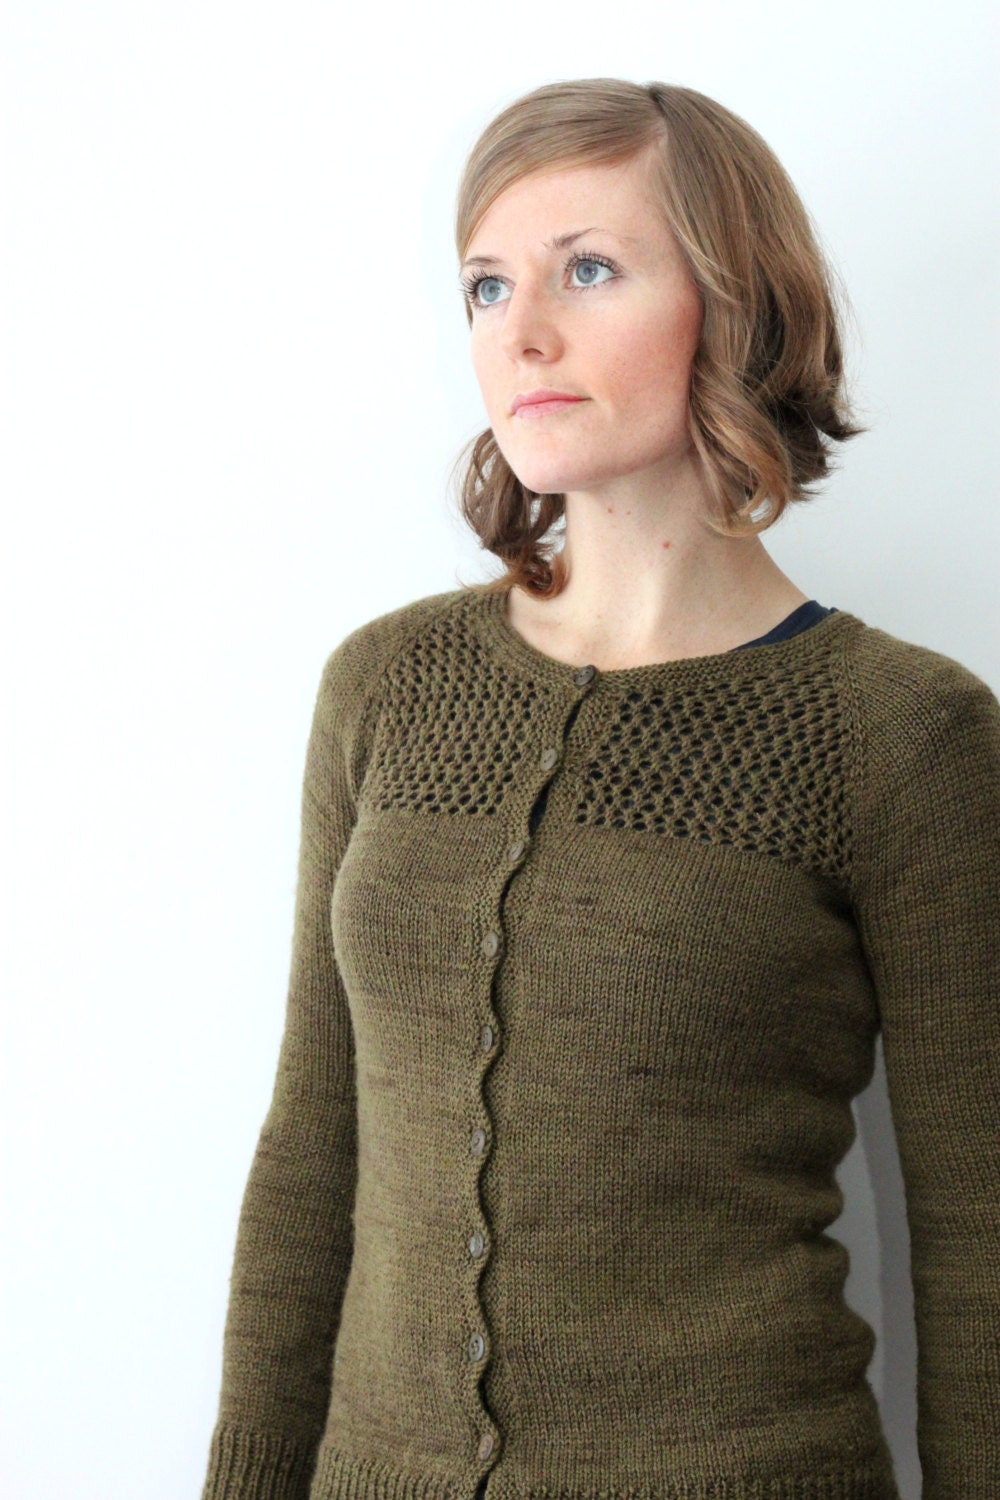 Knitting Pattern Sweater Lace : KNITTING PATTERN // Grace cardigan // top-down sock yarn lace